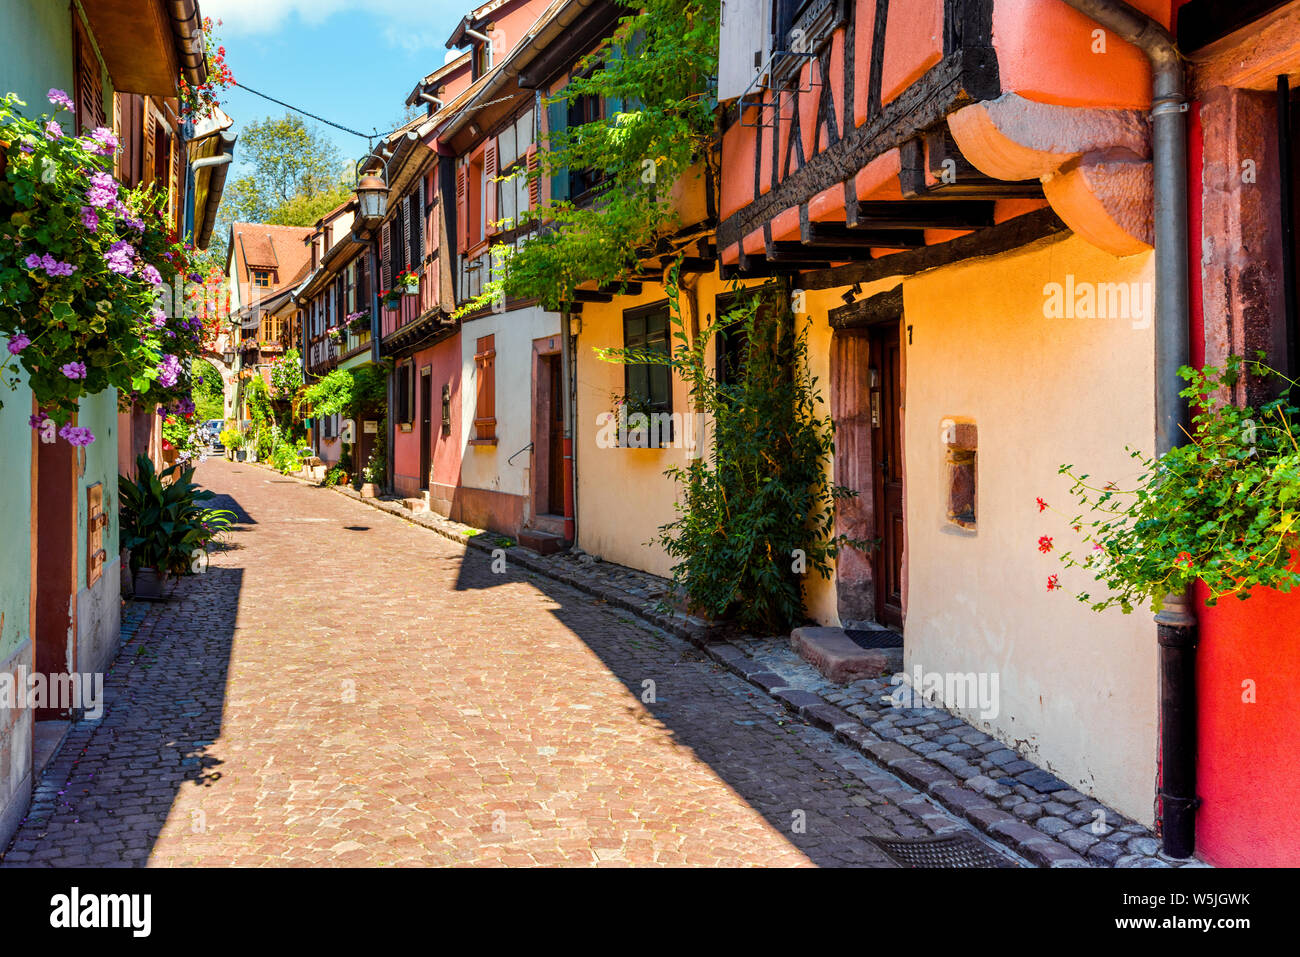 colorful picturesque lane in the old town of Kaysersberg, Alsace Wine Route, France, half-timbered houses with flower decoration Stock Photo